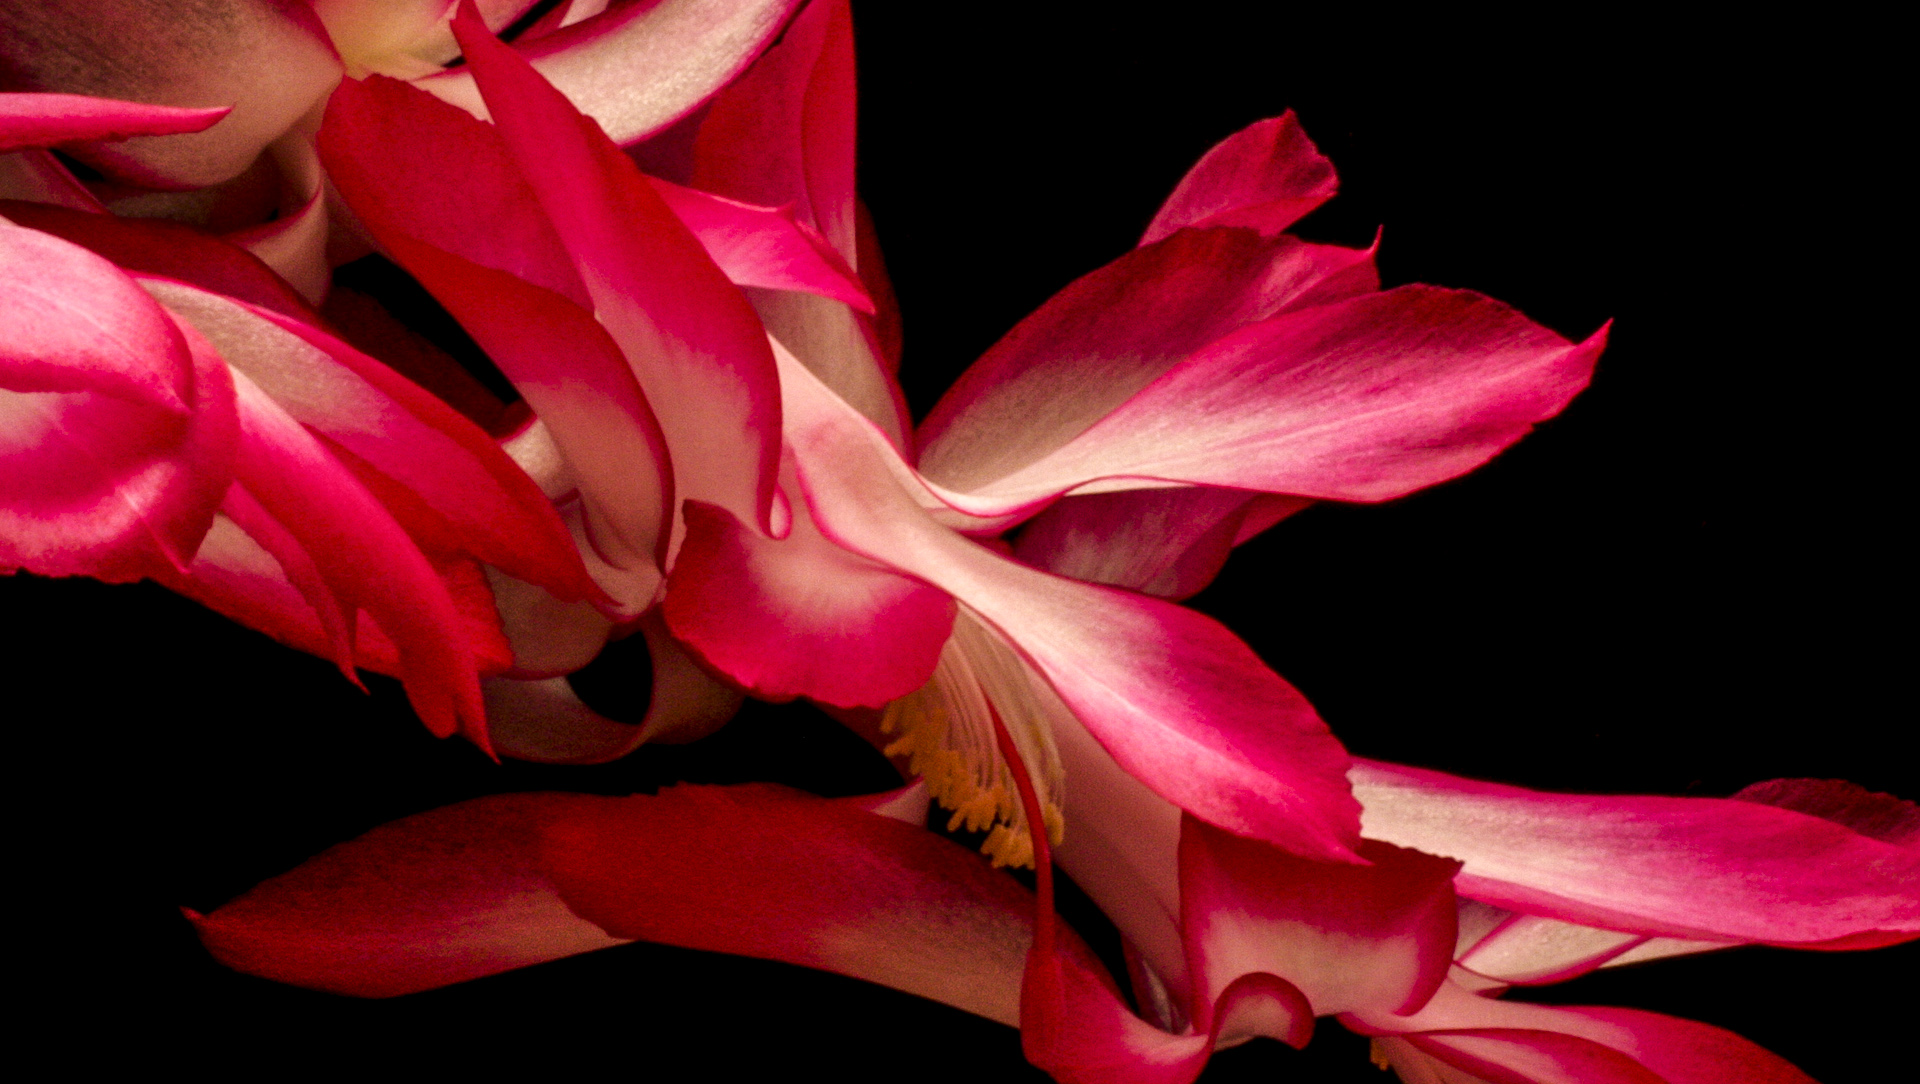 Blooming Christmas Cactus - Digital (Artificial Light) - Name Withheld Per Request